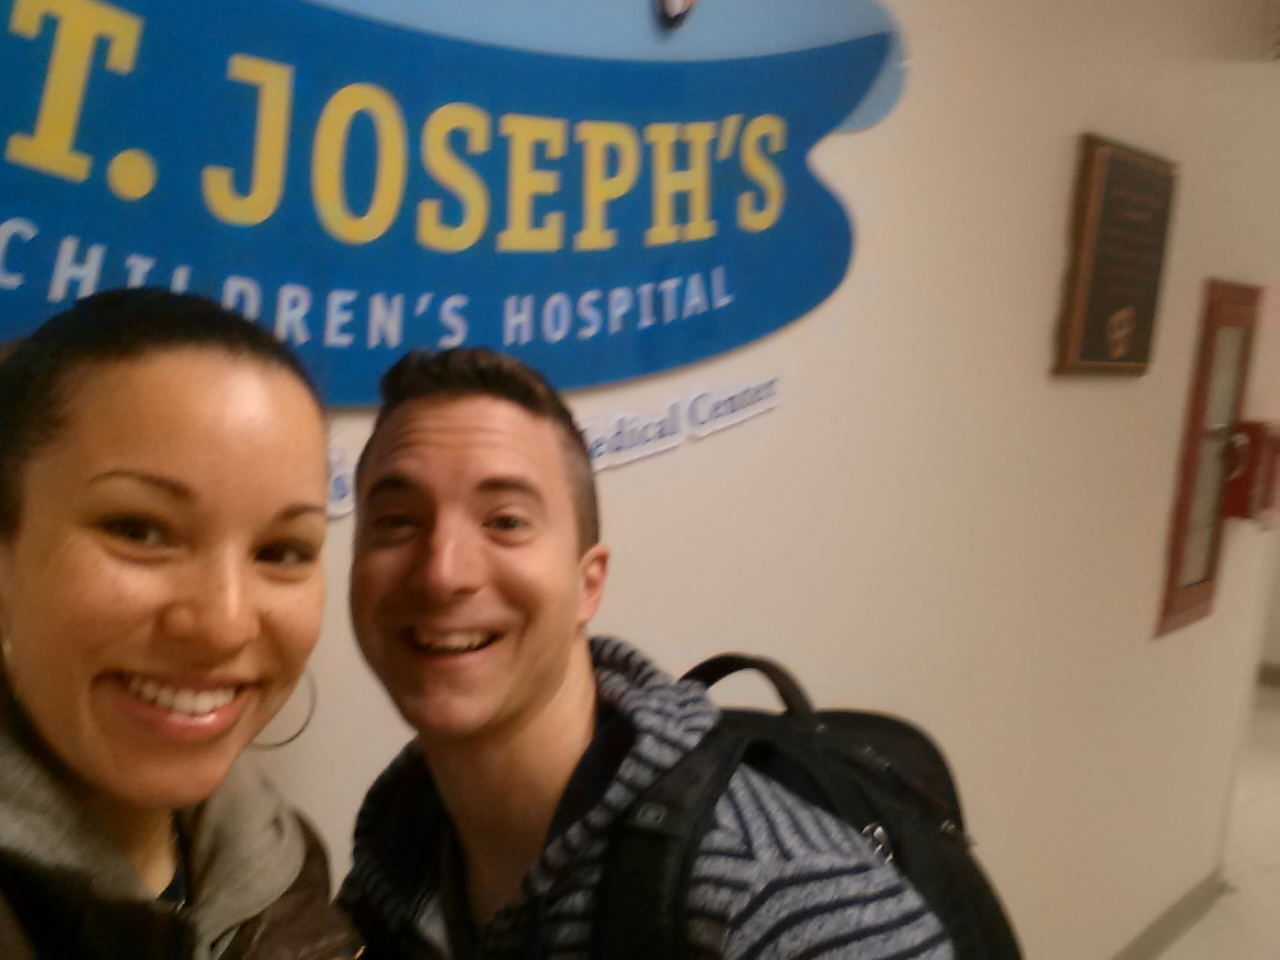 Giggles Theater Performance at St. Joseph's Hospital